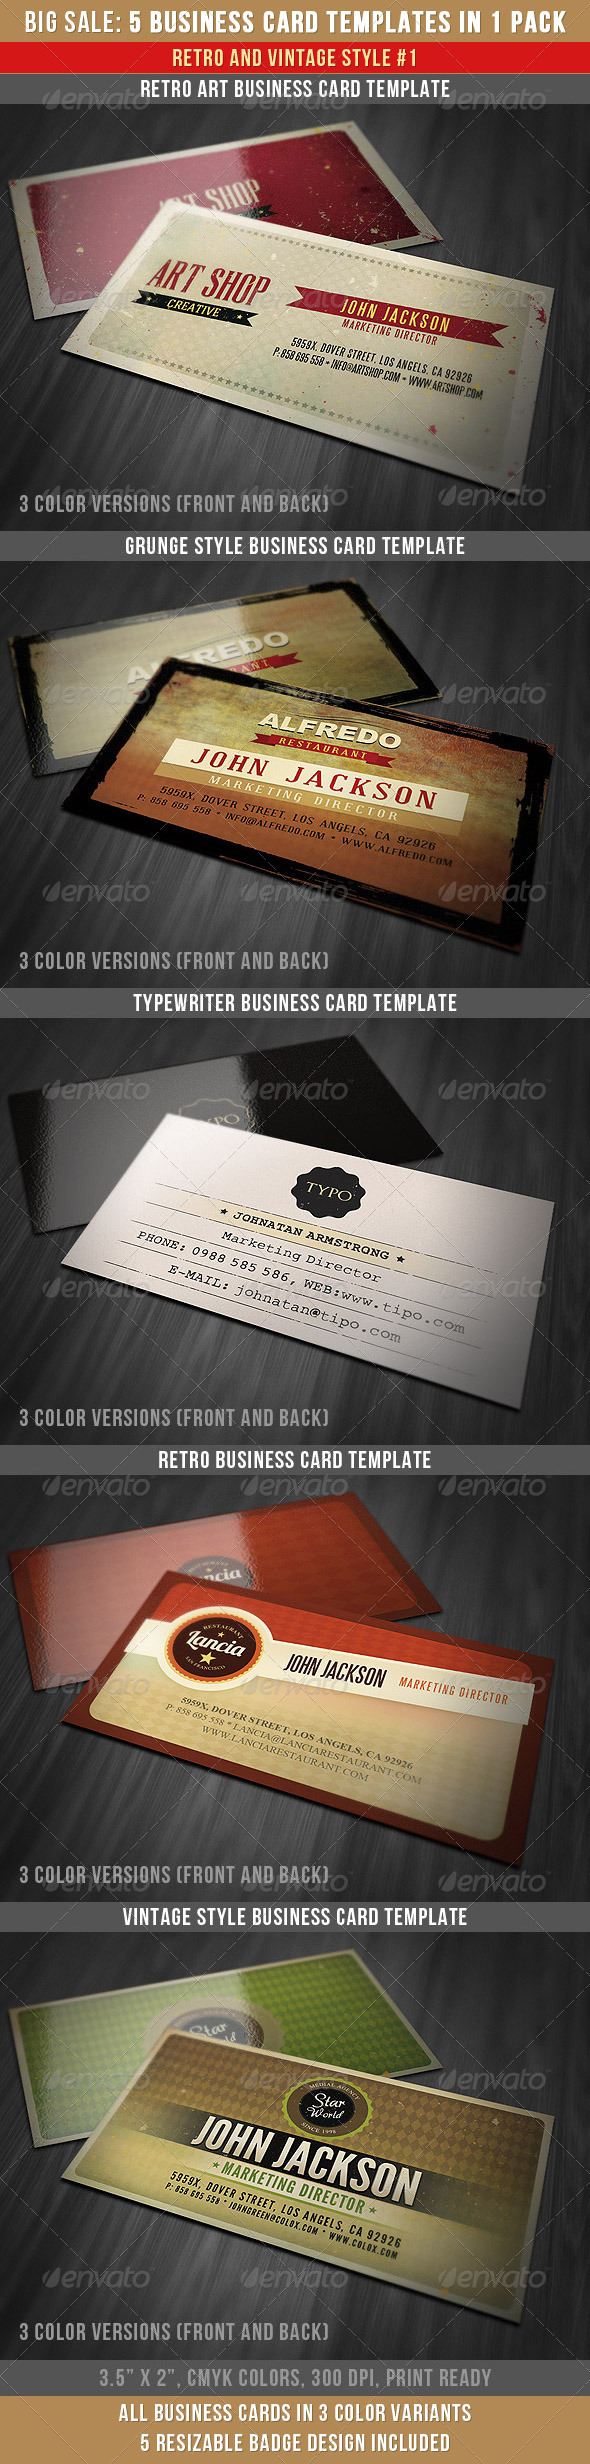 Retro Business Cards Bundle - Retro/Vintage Business Cards